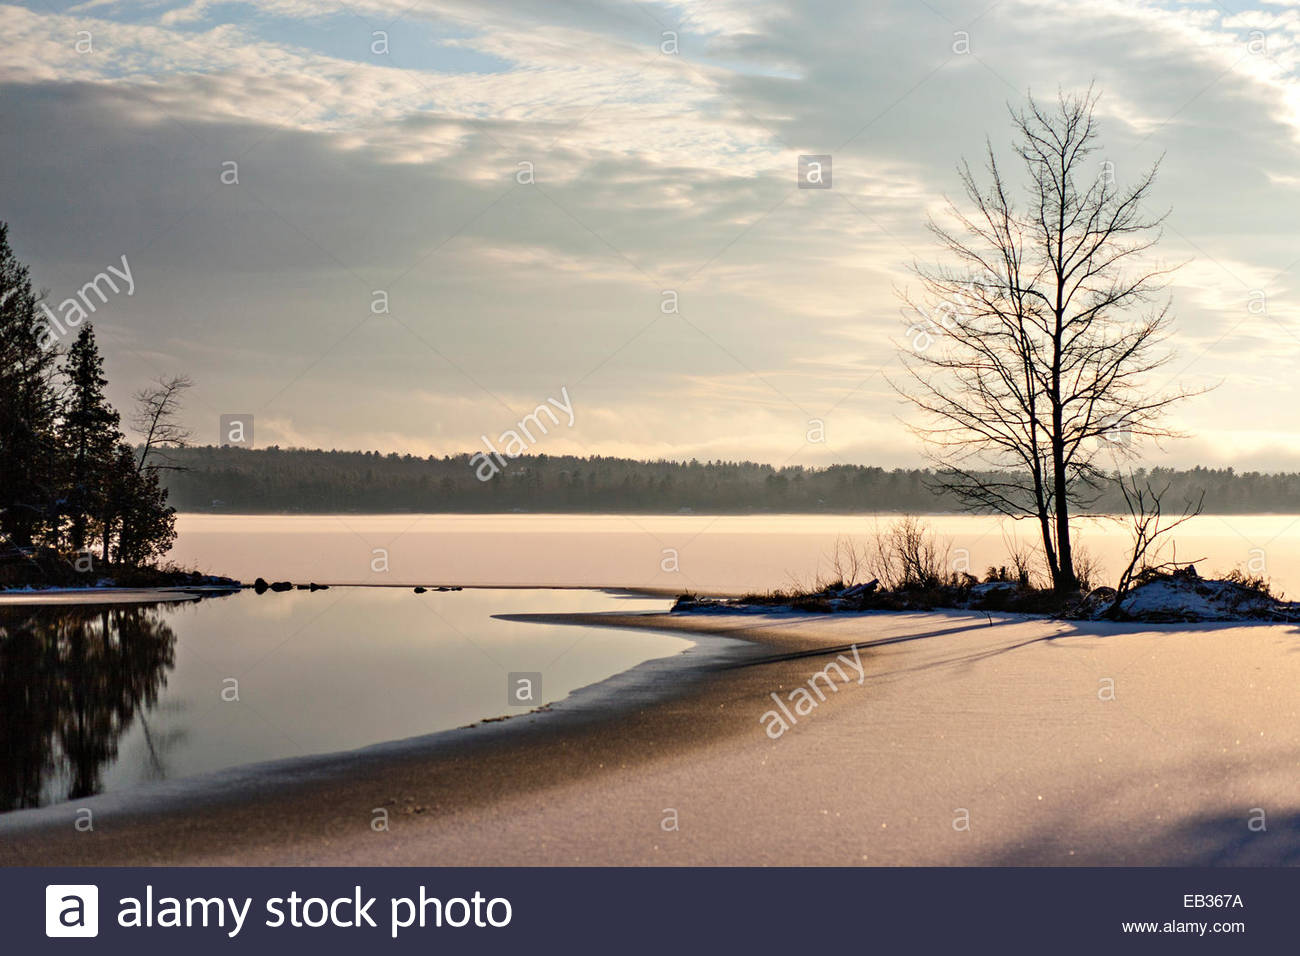 Sunset on a semi-frozen lake in Maine in early winter. - Stock Image